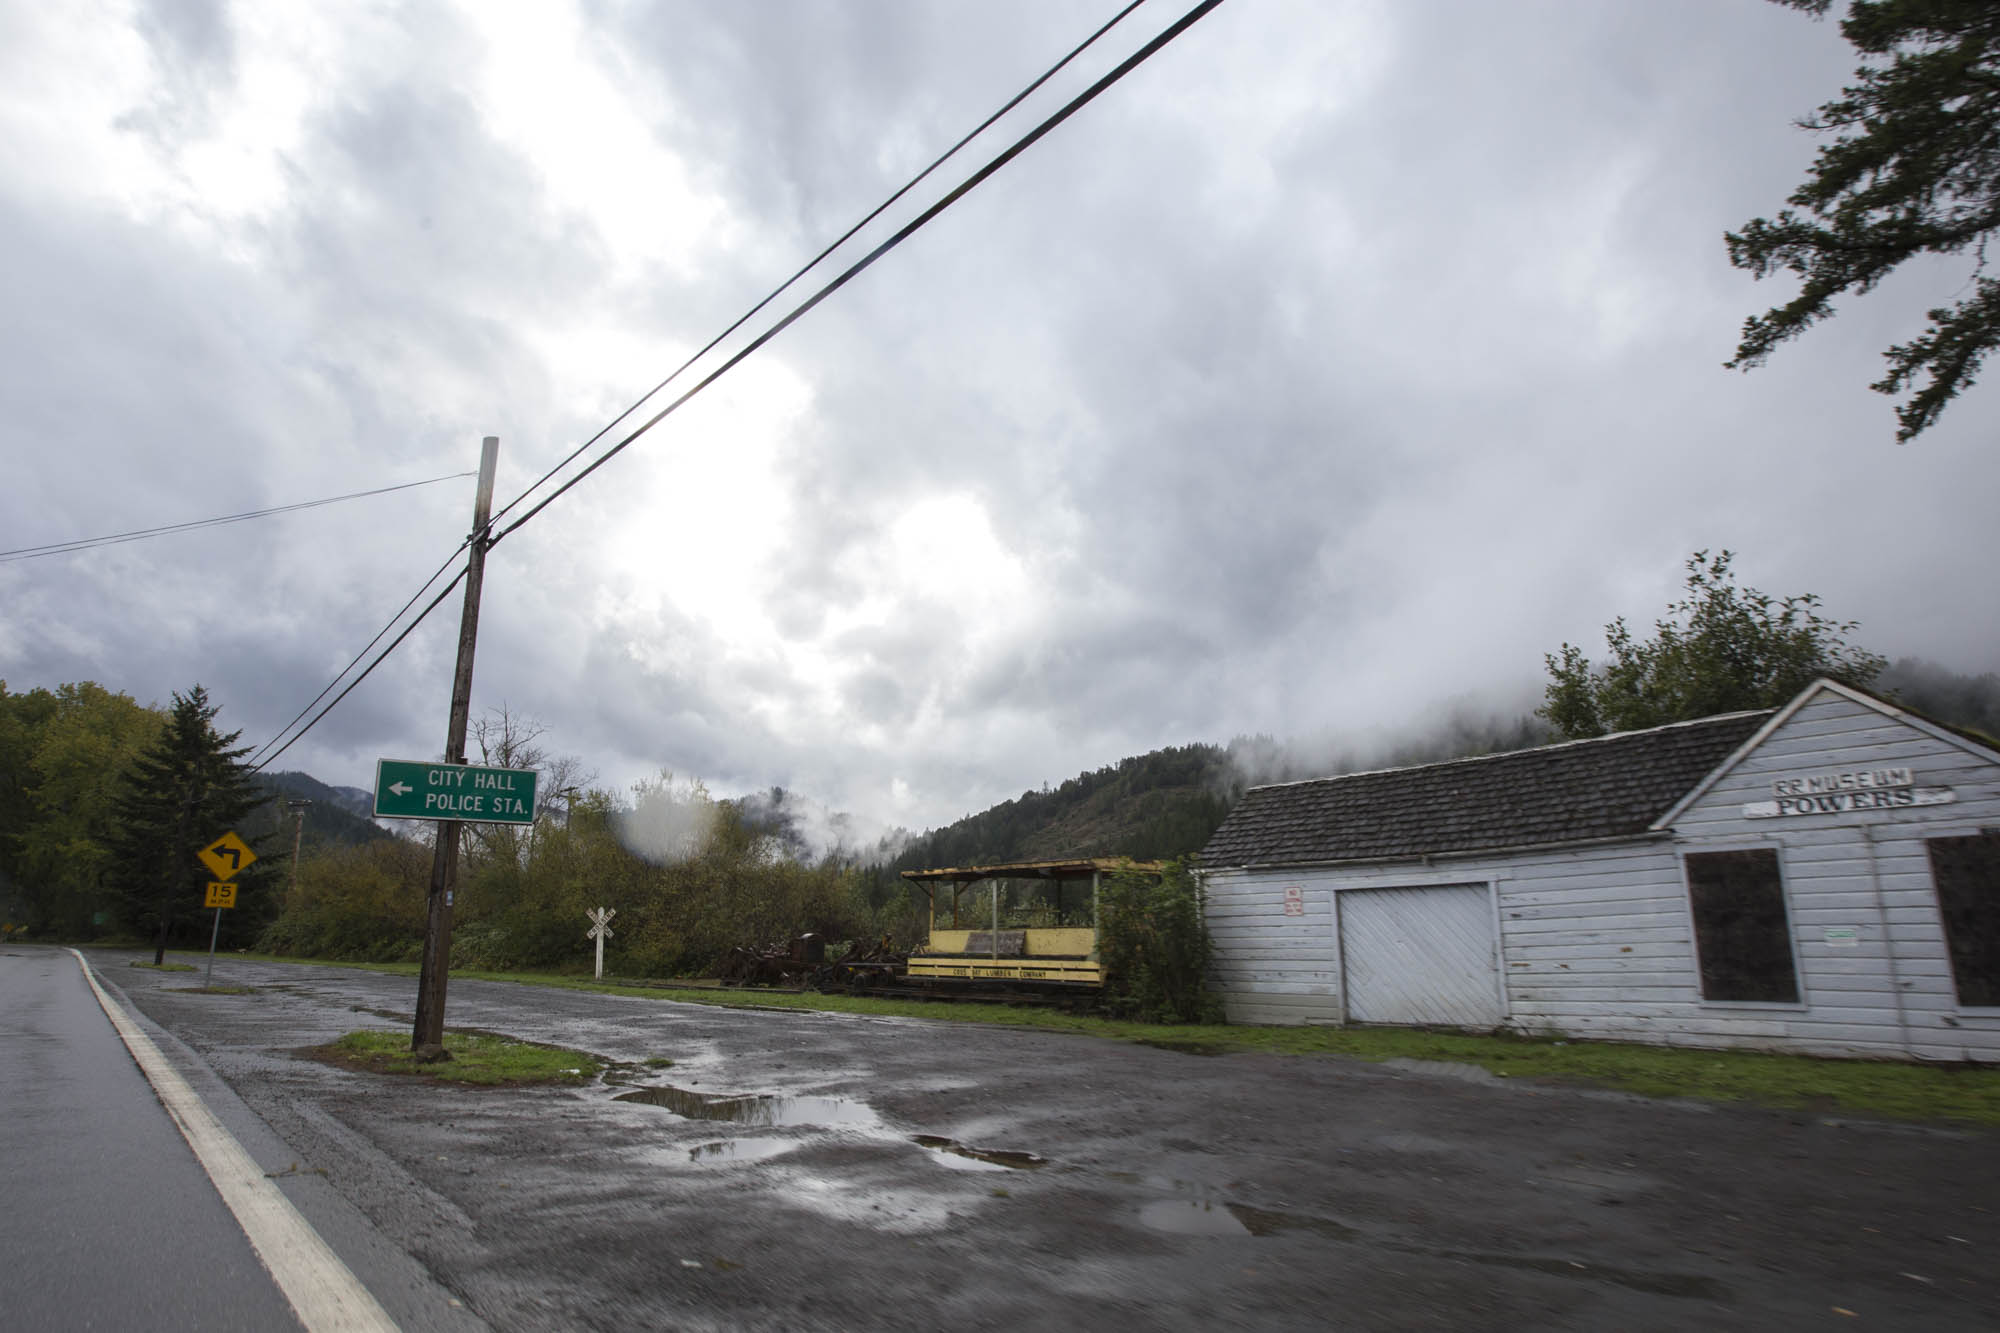 Powers, OR,a tiny town on the edge of the Rogue River-Siskiyou National Forest.